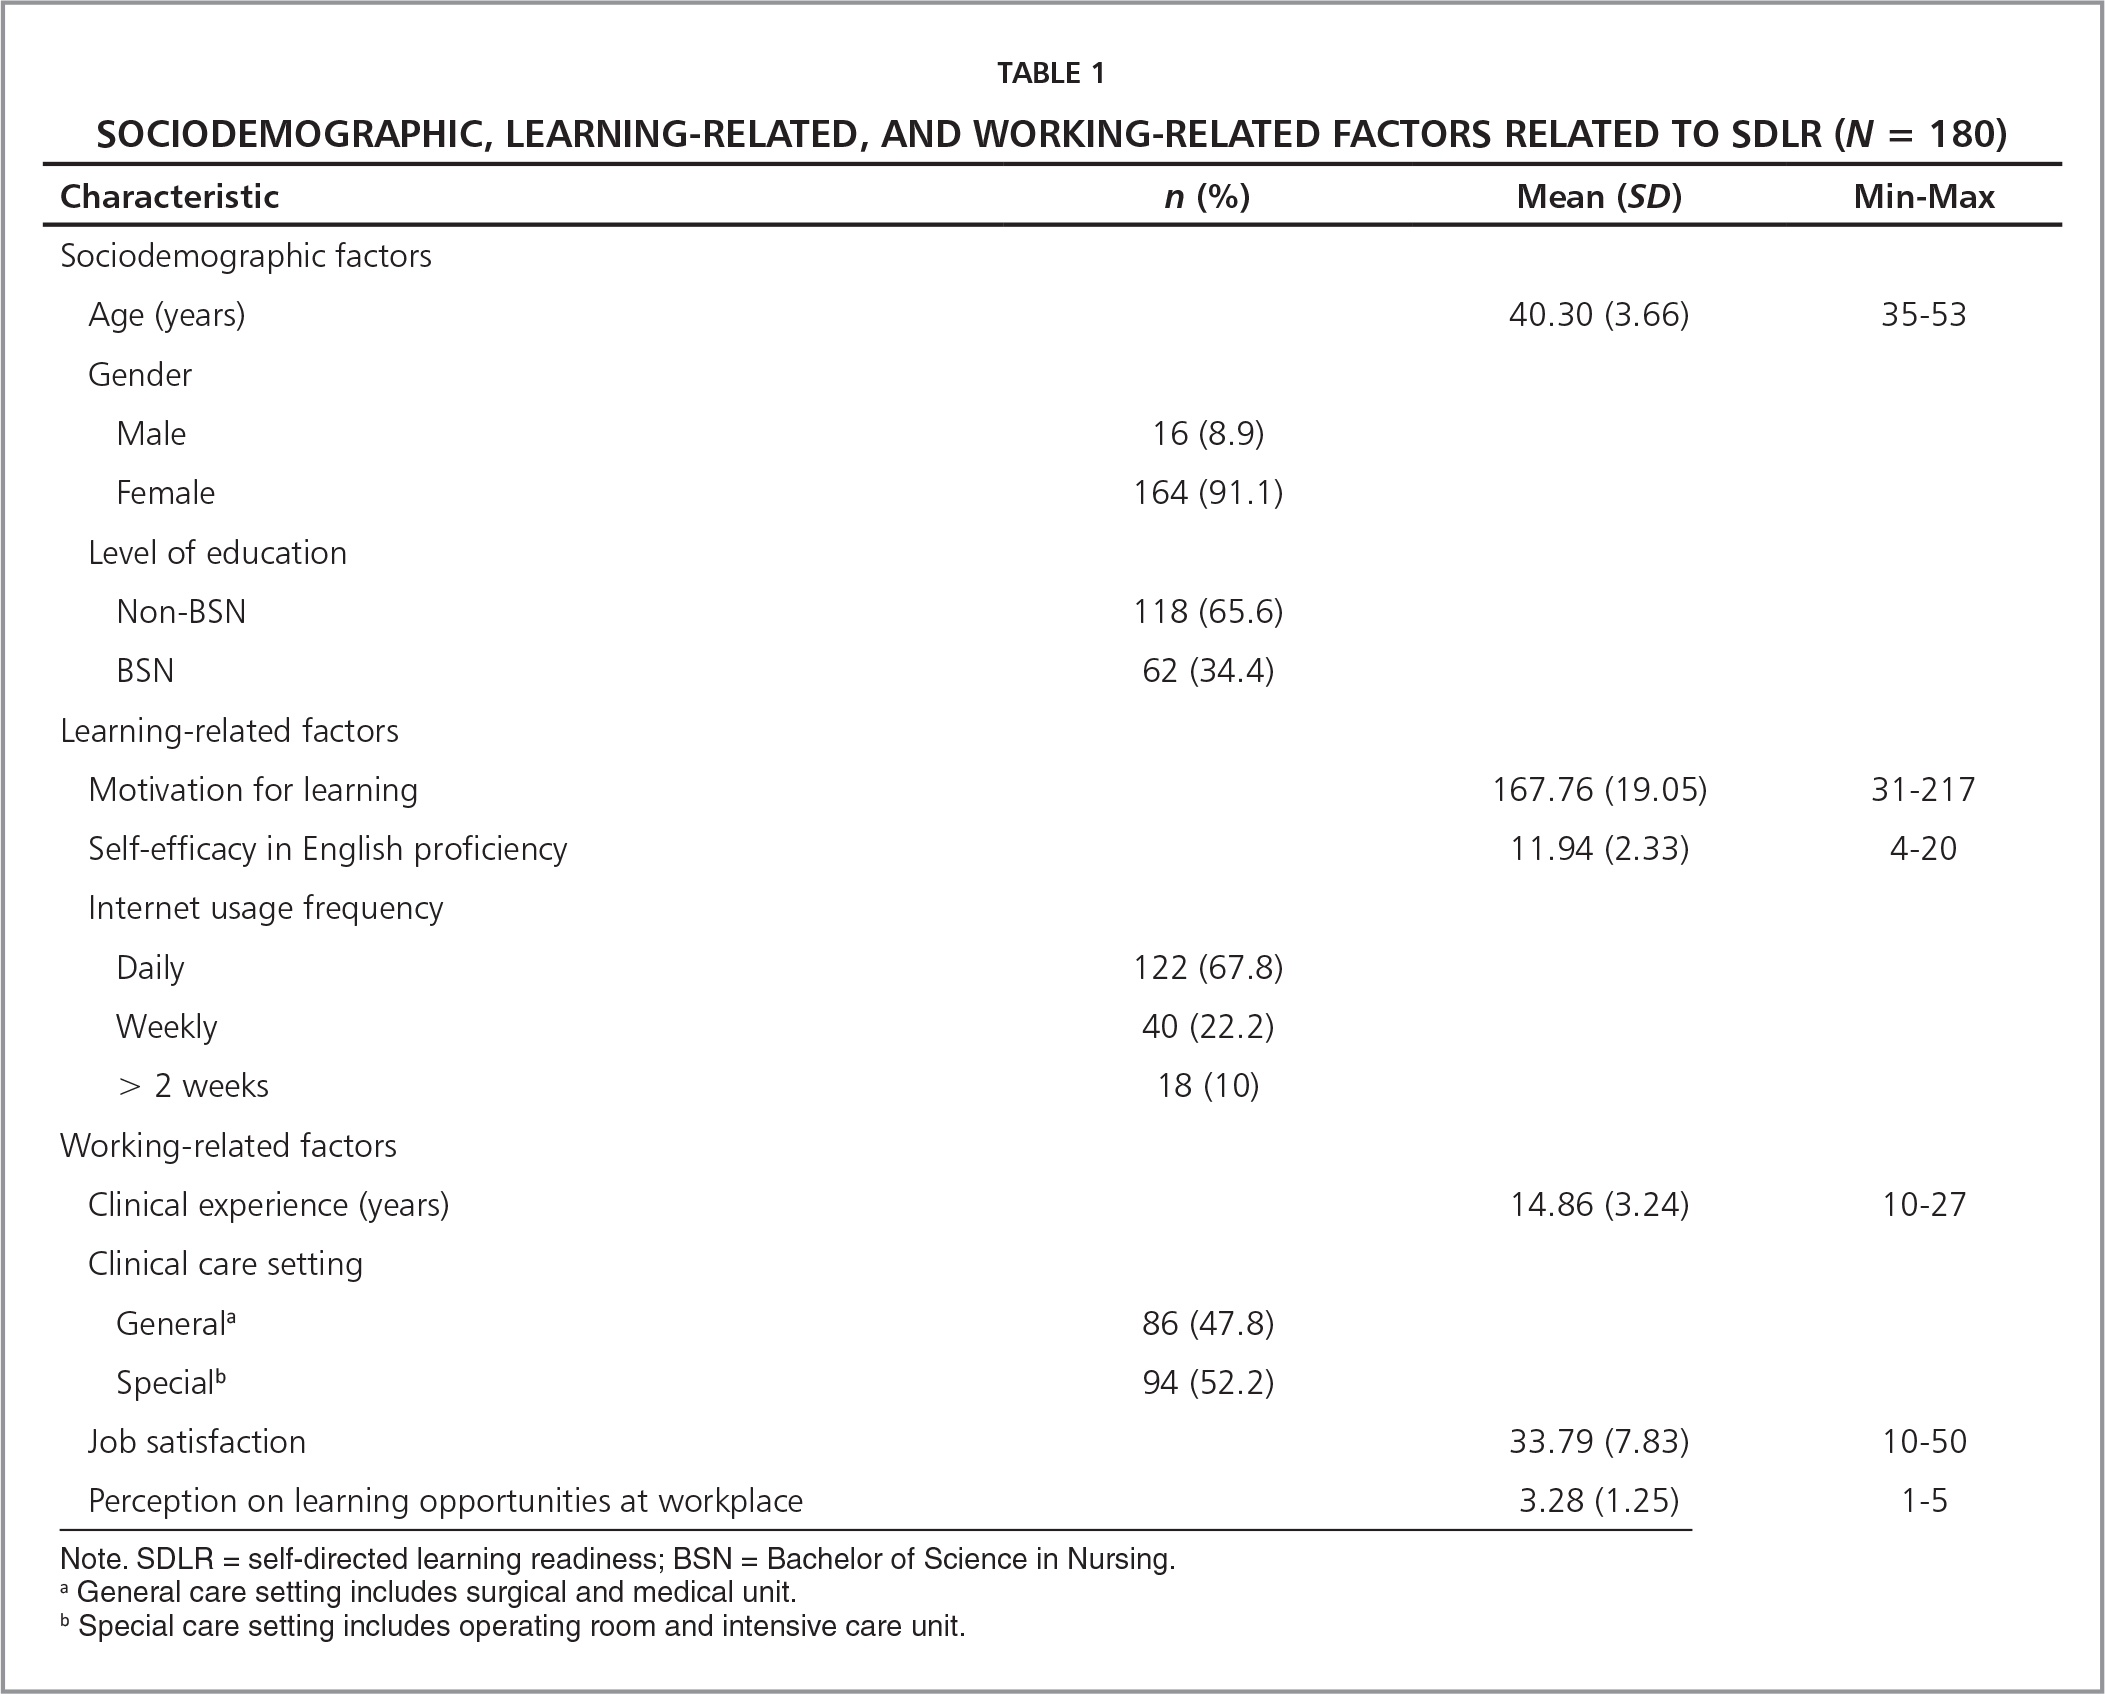 Sociodemographic, Learning-Related, and Working-Related Factors Related to SDLR (N = 180)